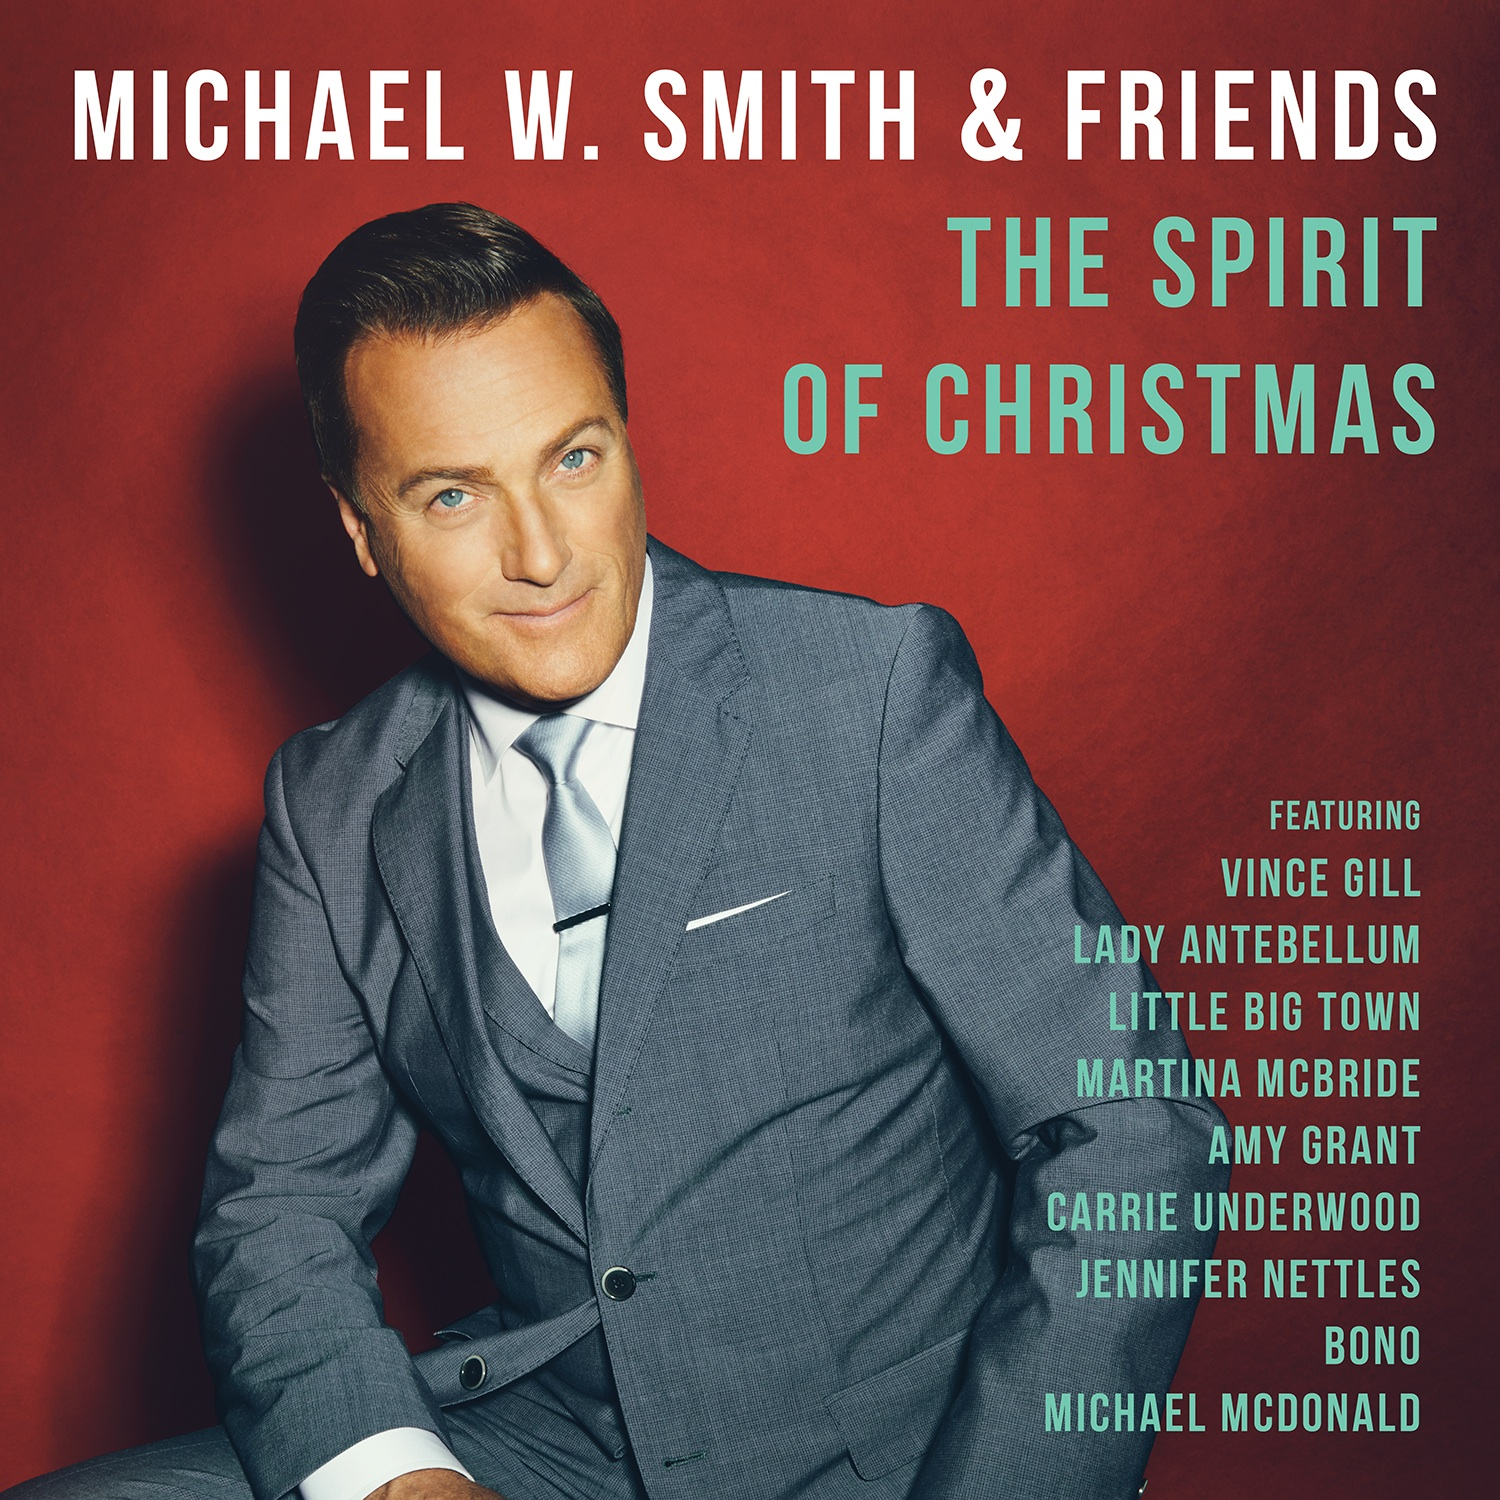 michael w smith interview  new  u0026 39 spirit of christmas u0026 39  album